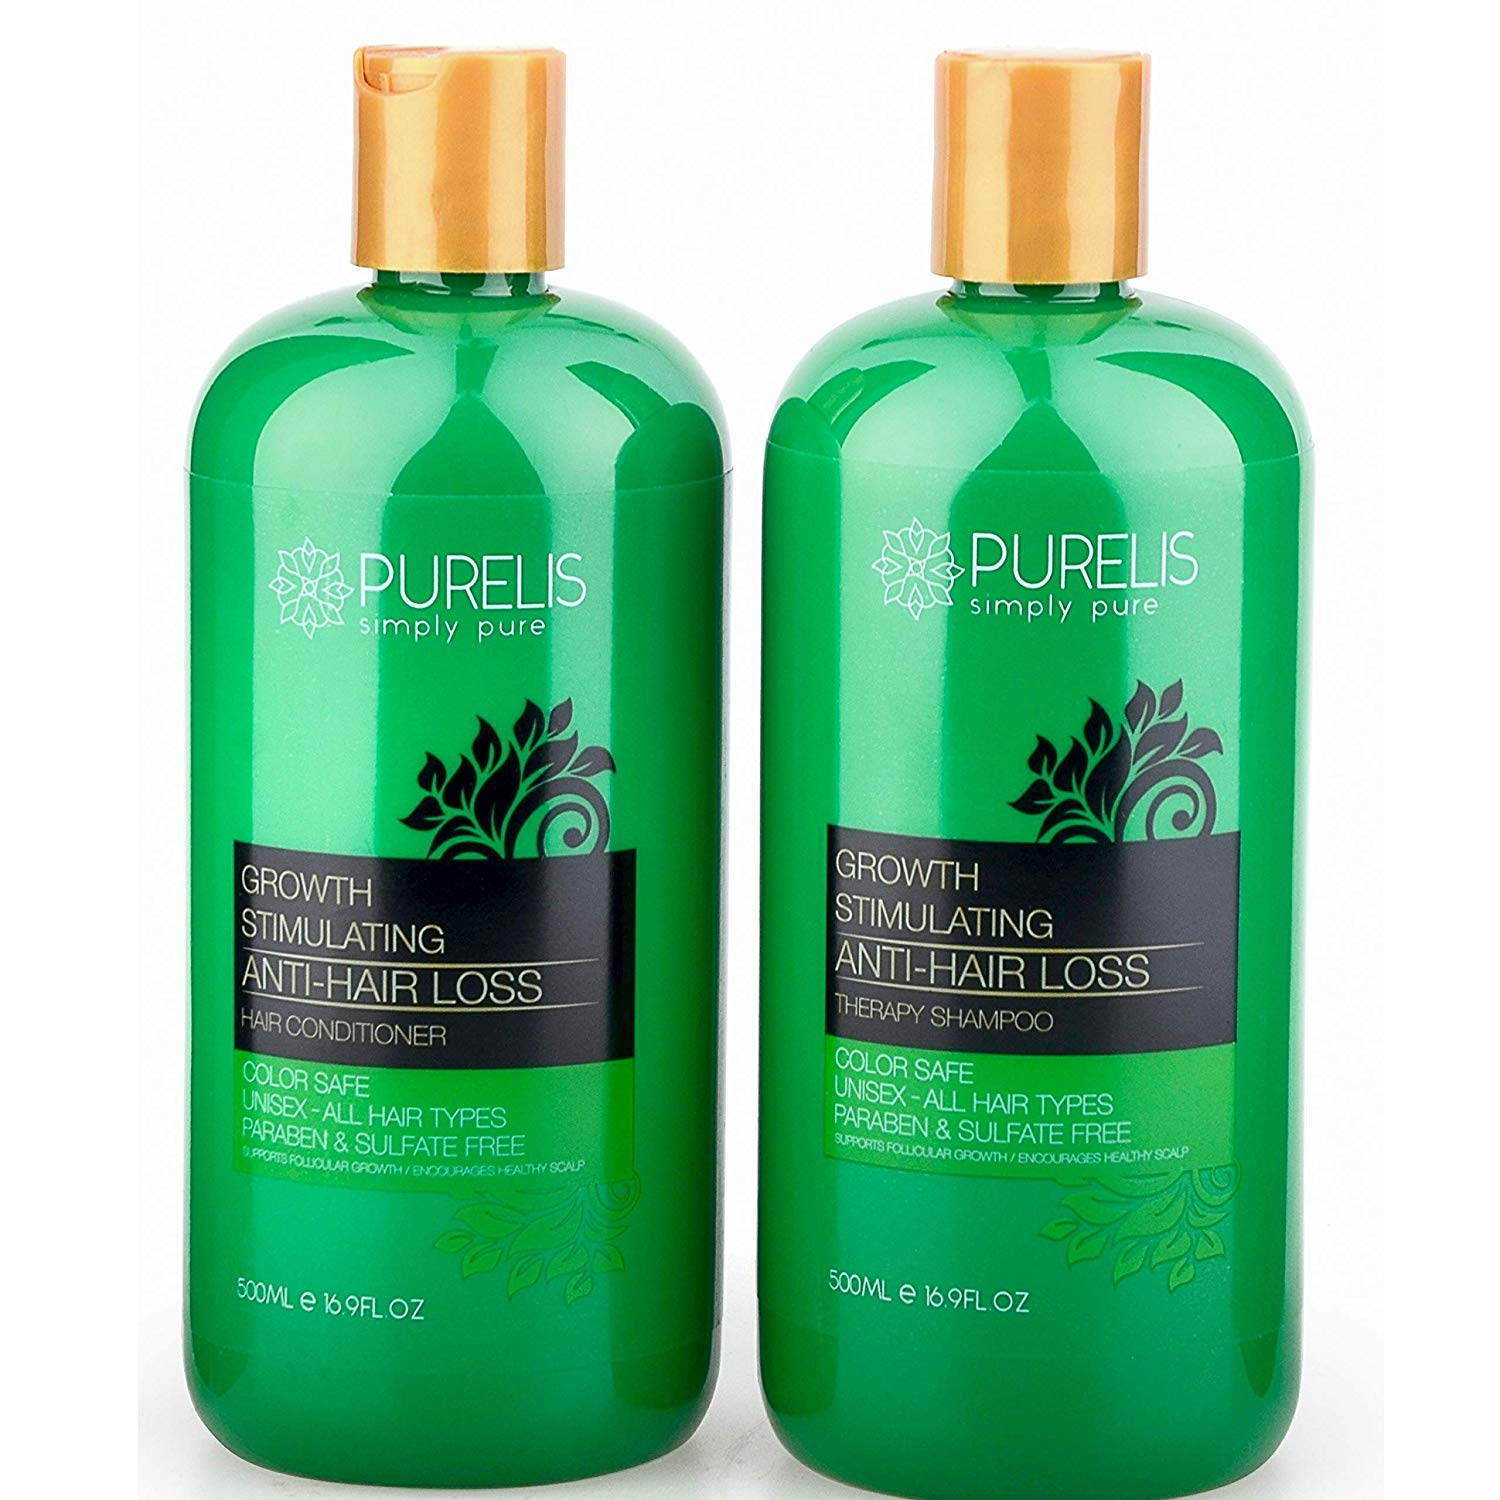 sulfate free shampoo for hair loss